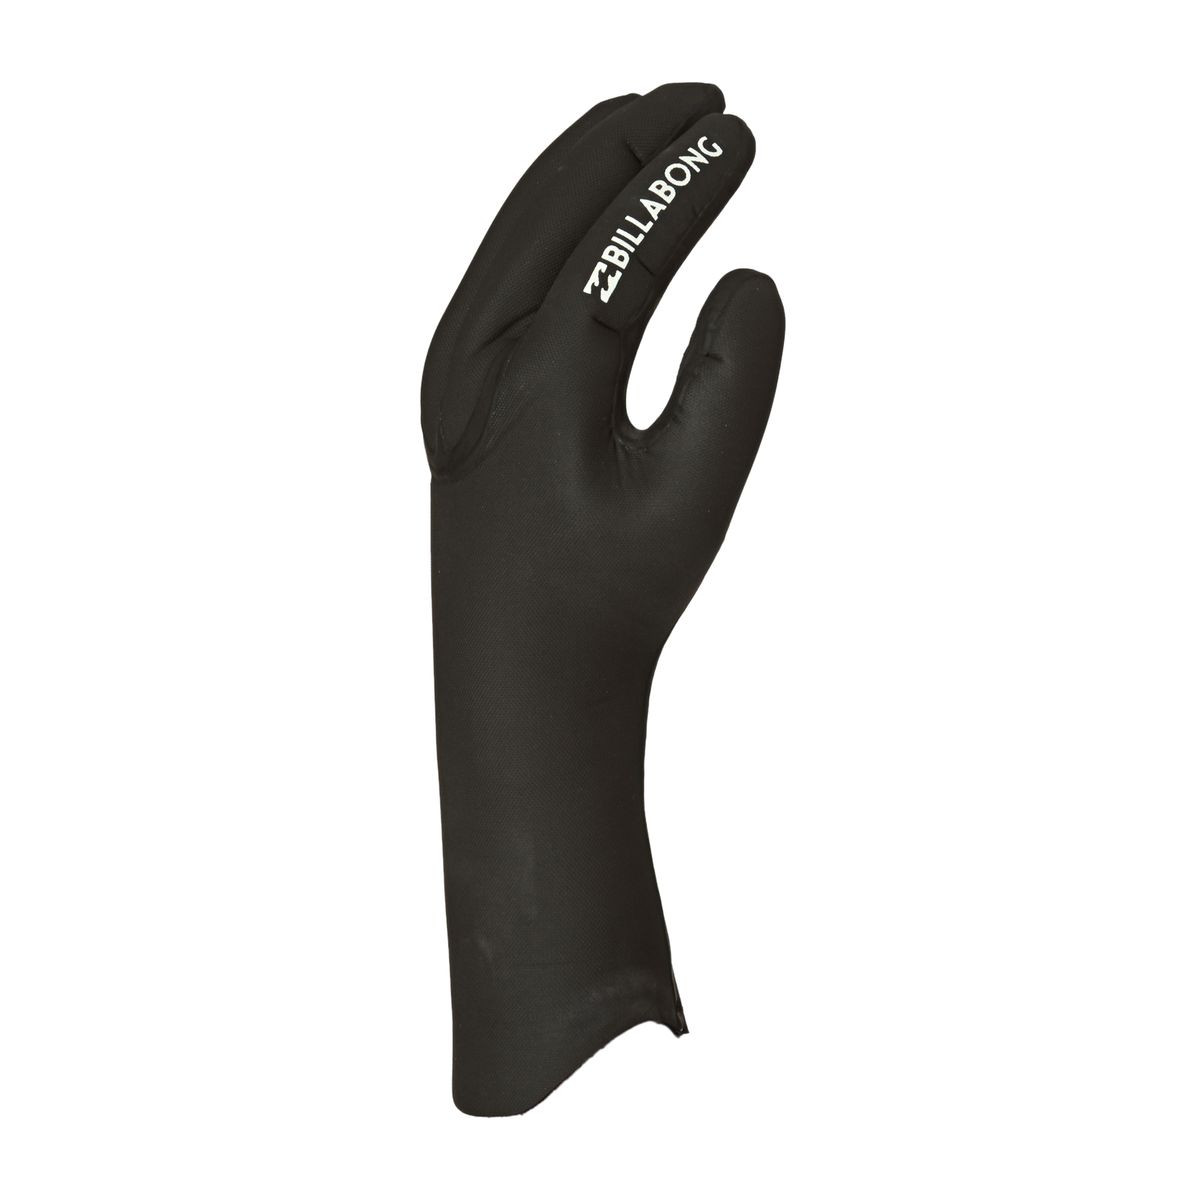 Billabong Furnace Comp 2mm 5 Finger Wetsuit Glove - Black